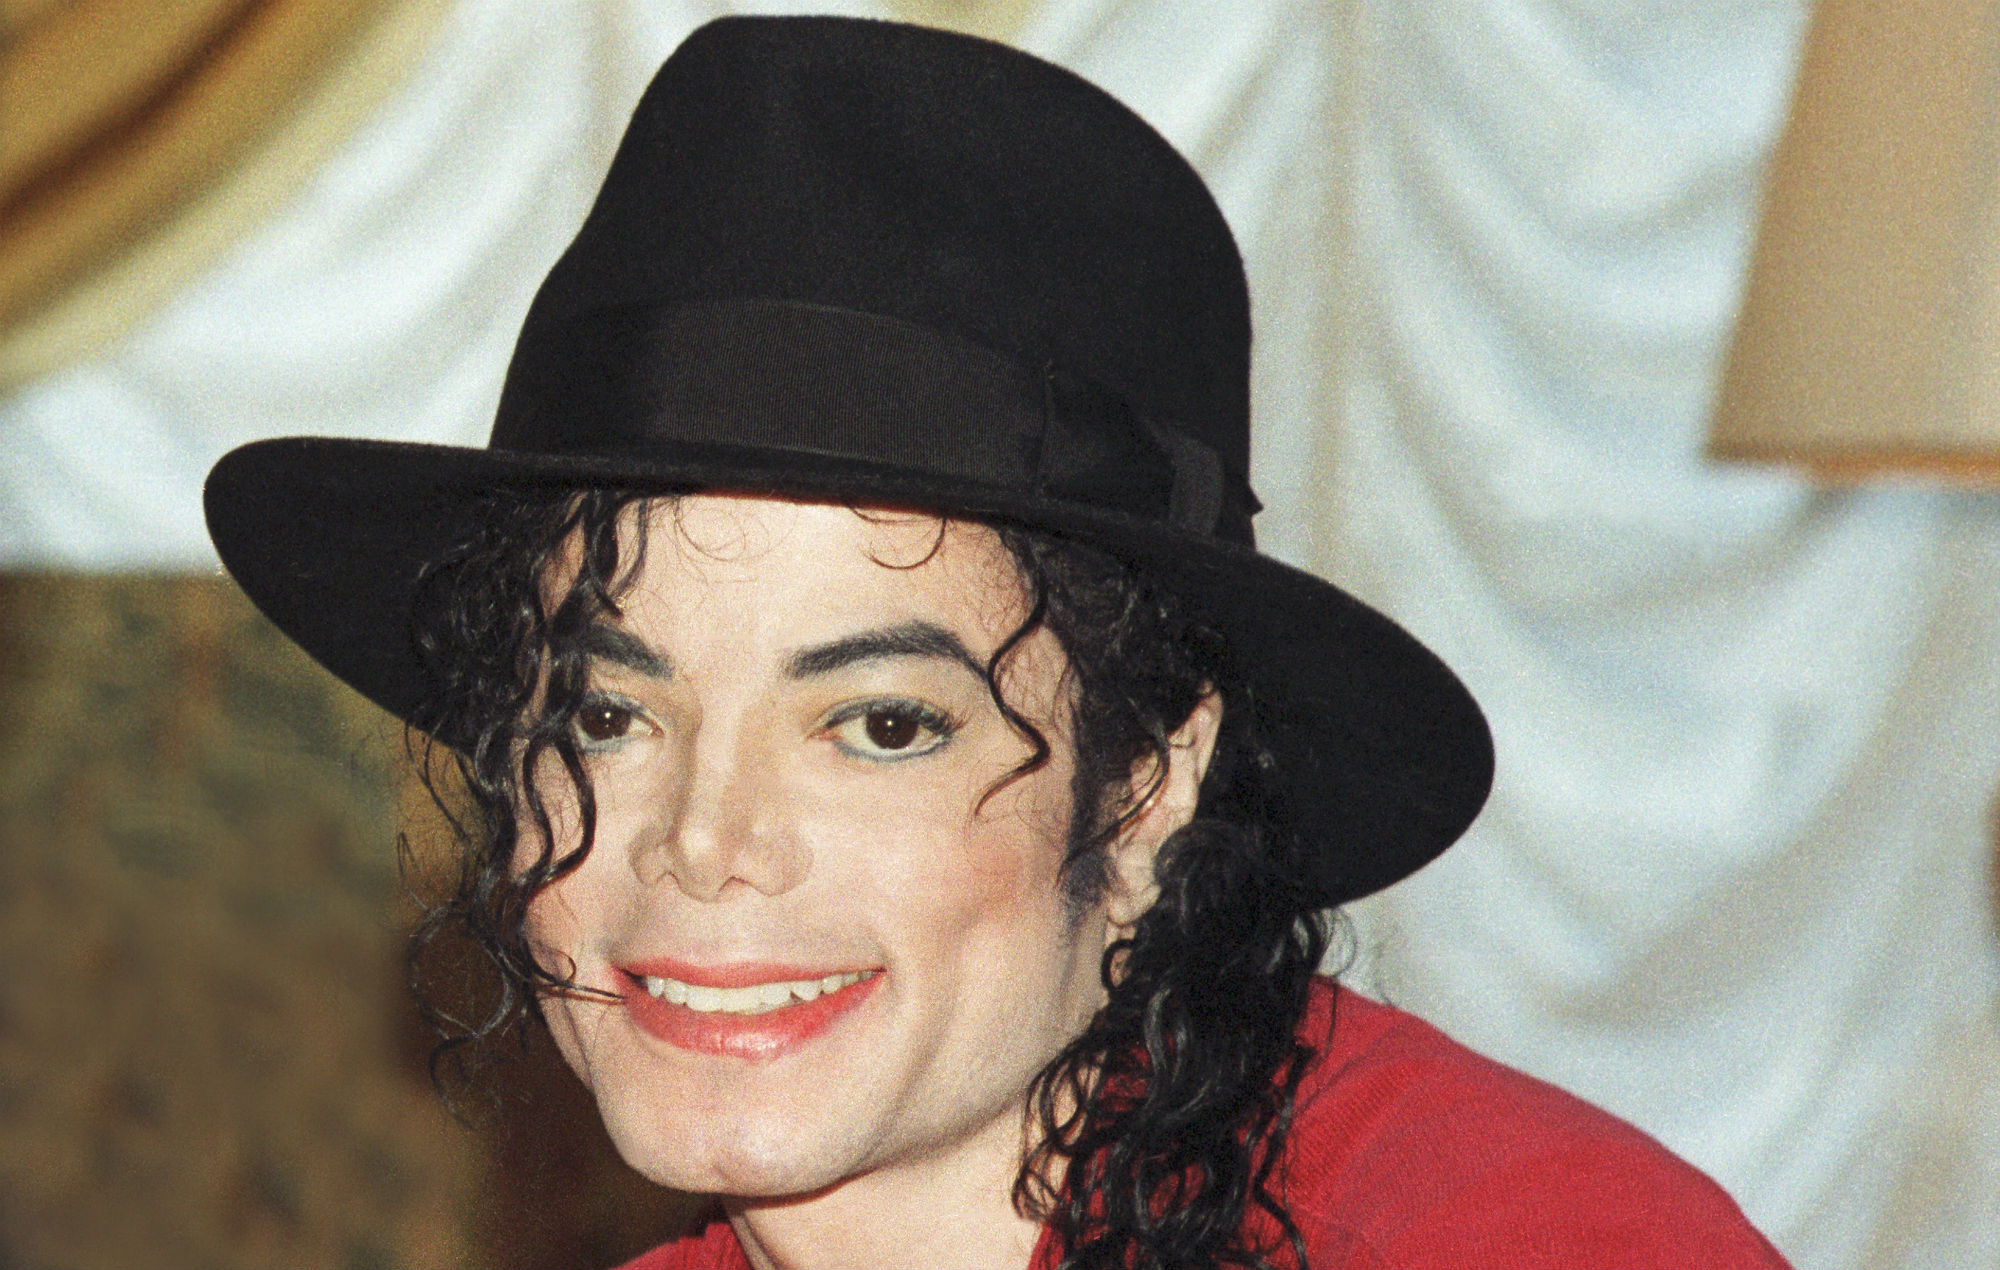 Nuevo documental 'Chase The Truth' defendiendo a Michael Jackson